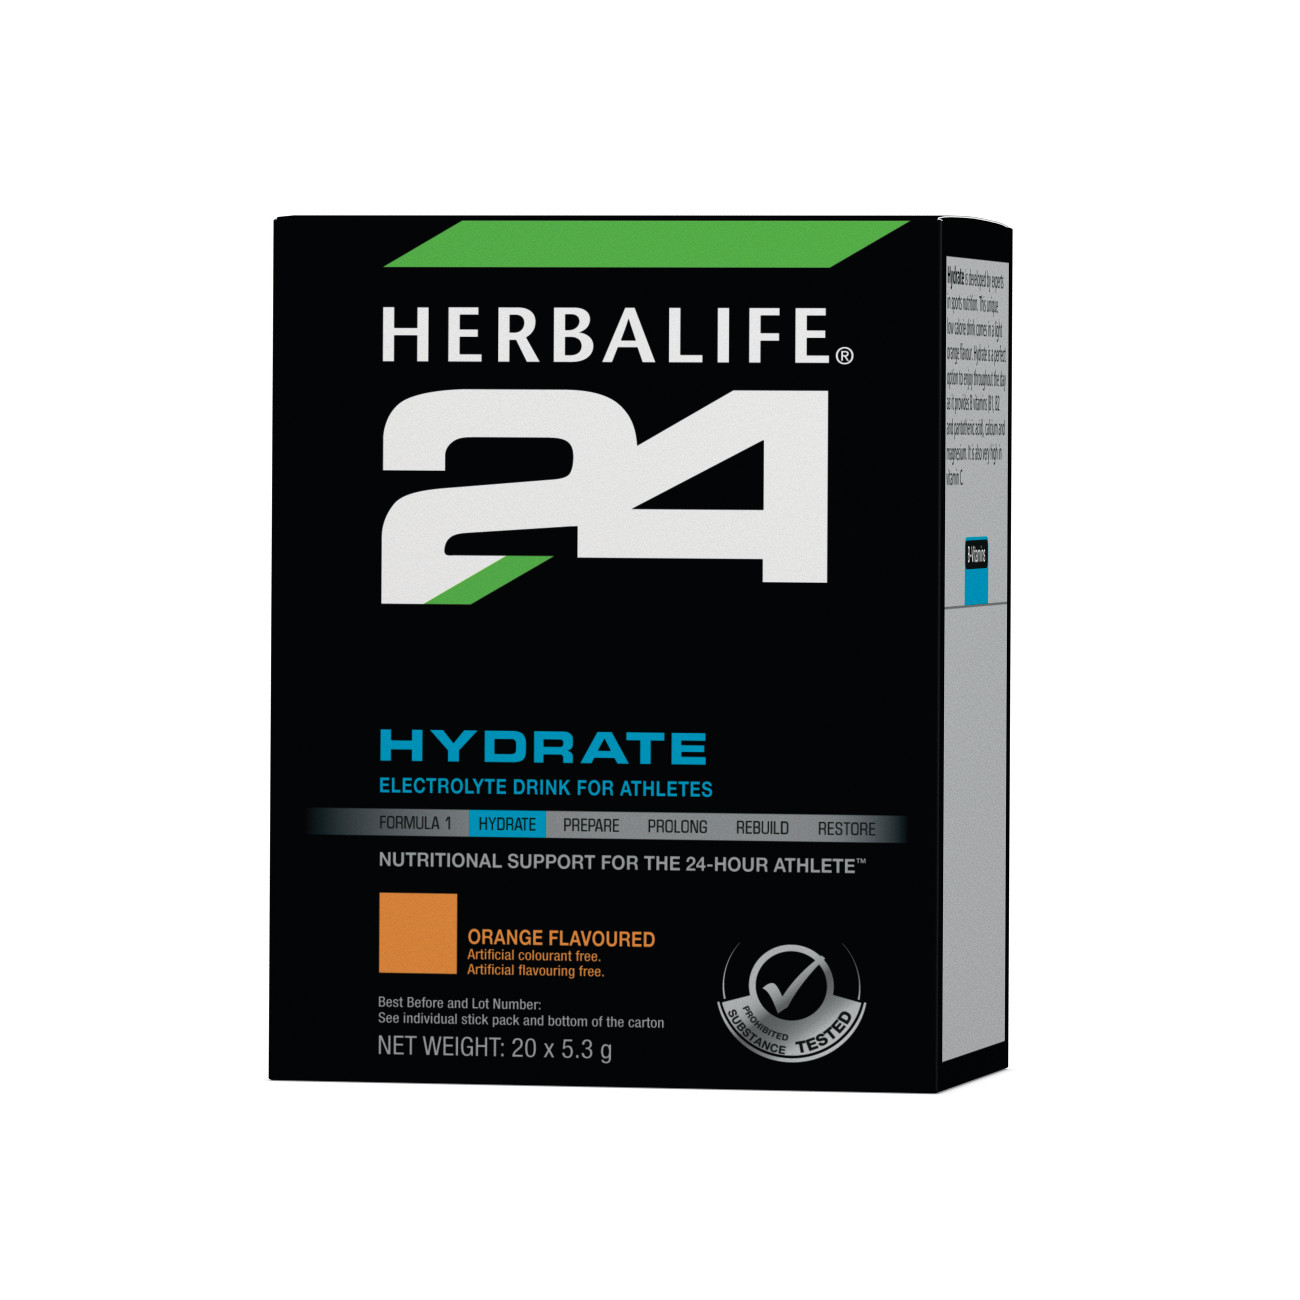 Herbalife24® Hydrate Electrolyte Drink Orange Flavoured product shot